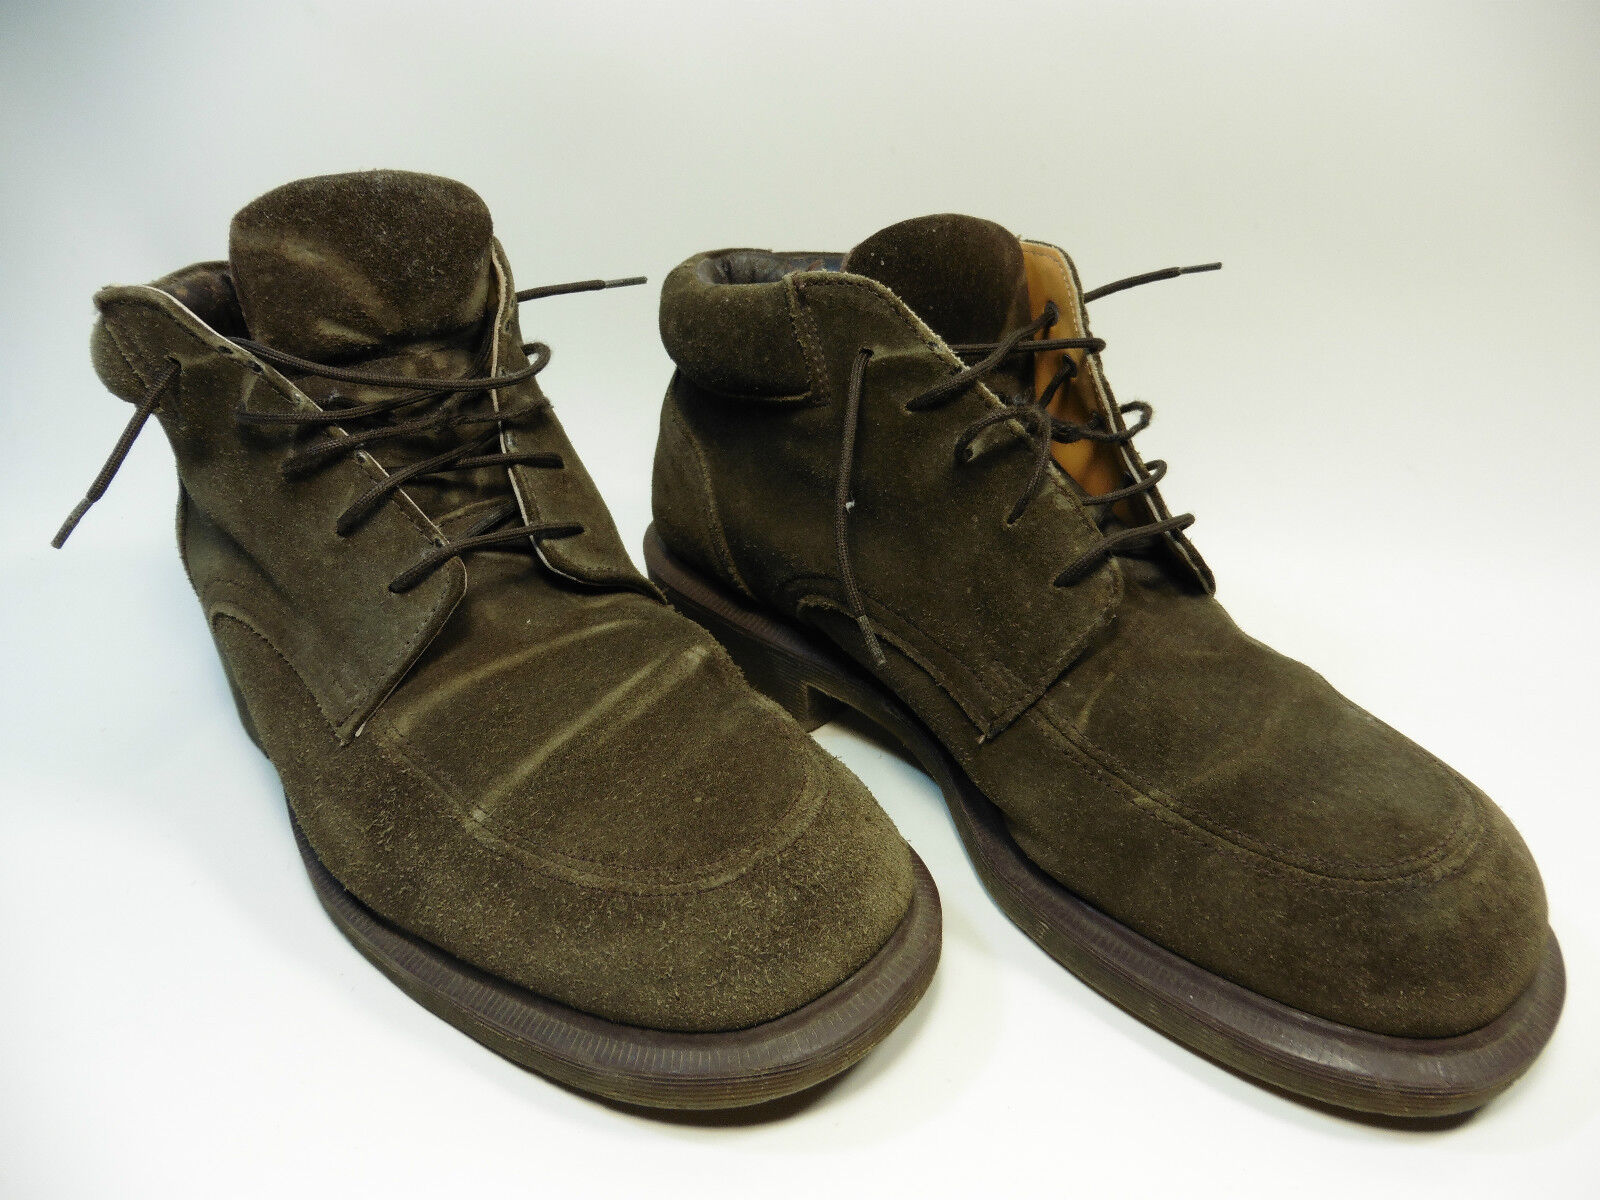 DR MARTENS CHUKKA ANKLE BOOTS brown N °8497 SIZE 8 MADE IN ENGLAND